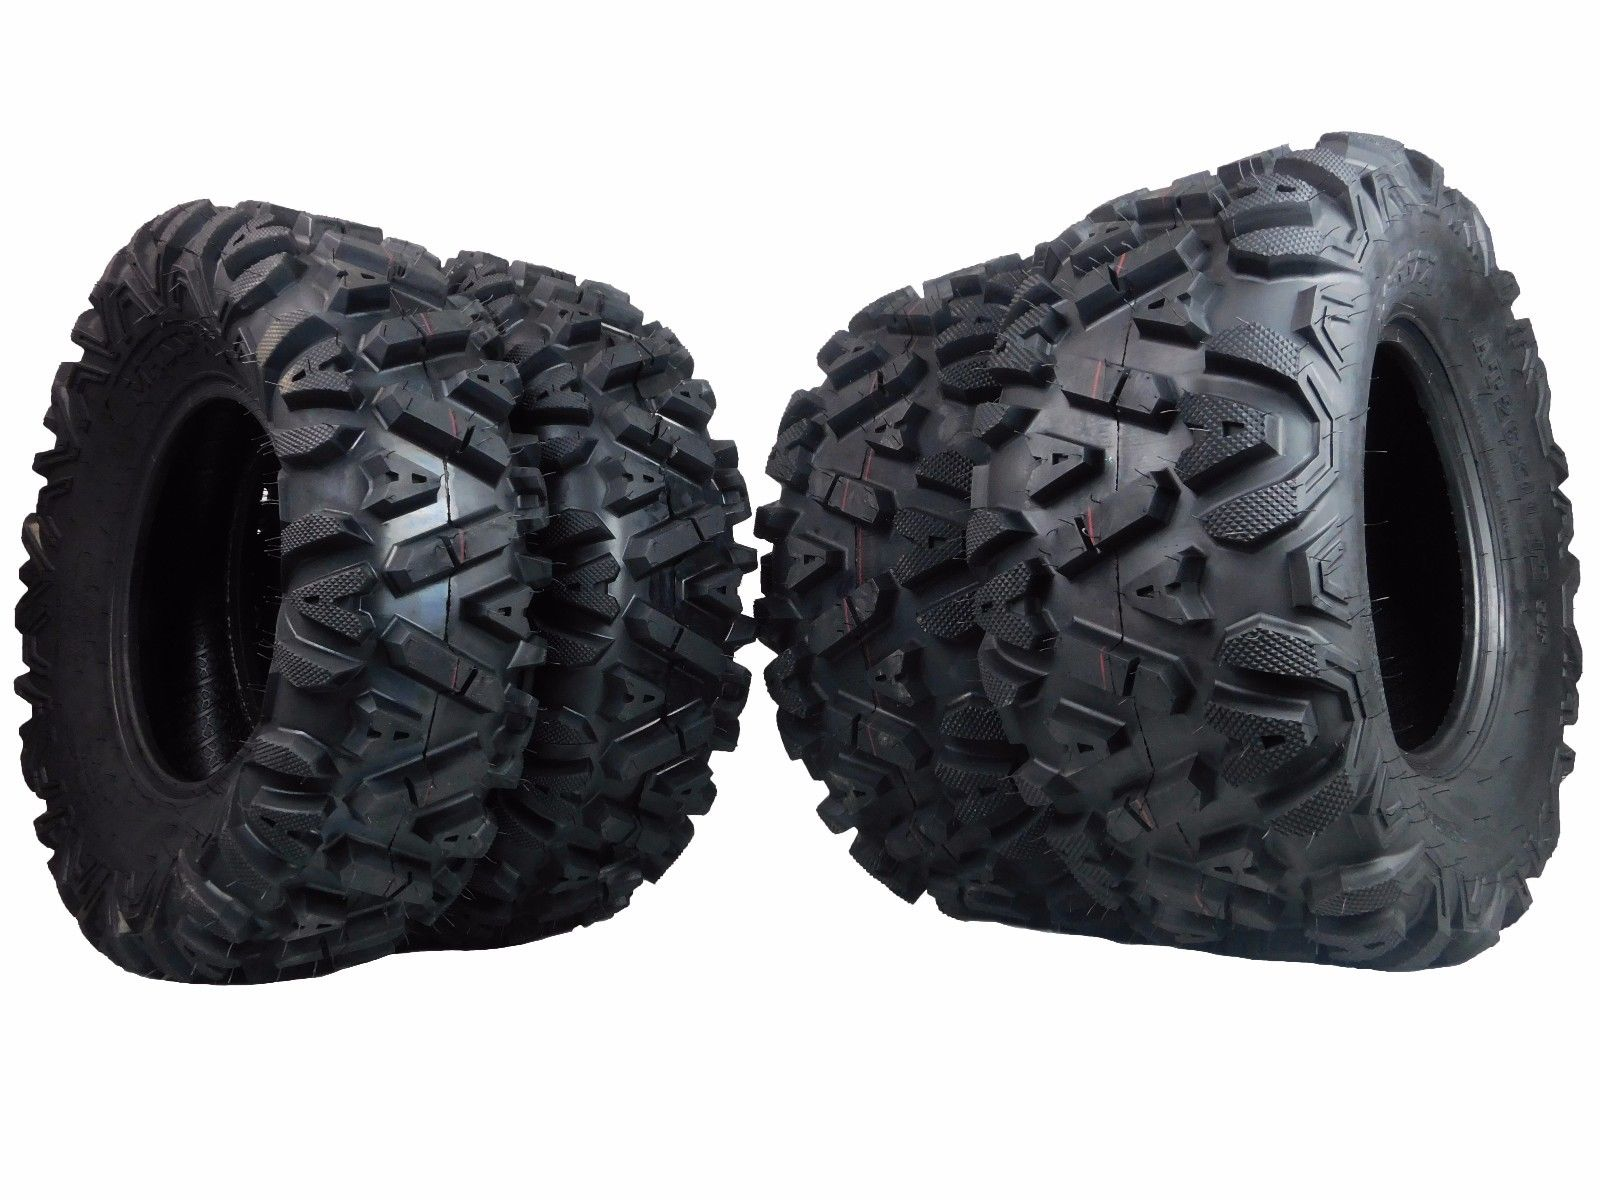 MASSFX-KT-26x912-and-26x11-12-ATV-KT-Tire-4-set-26x9-12-Front-26x11-12-Rear-6Ply-26inch-image-1